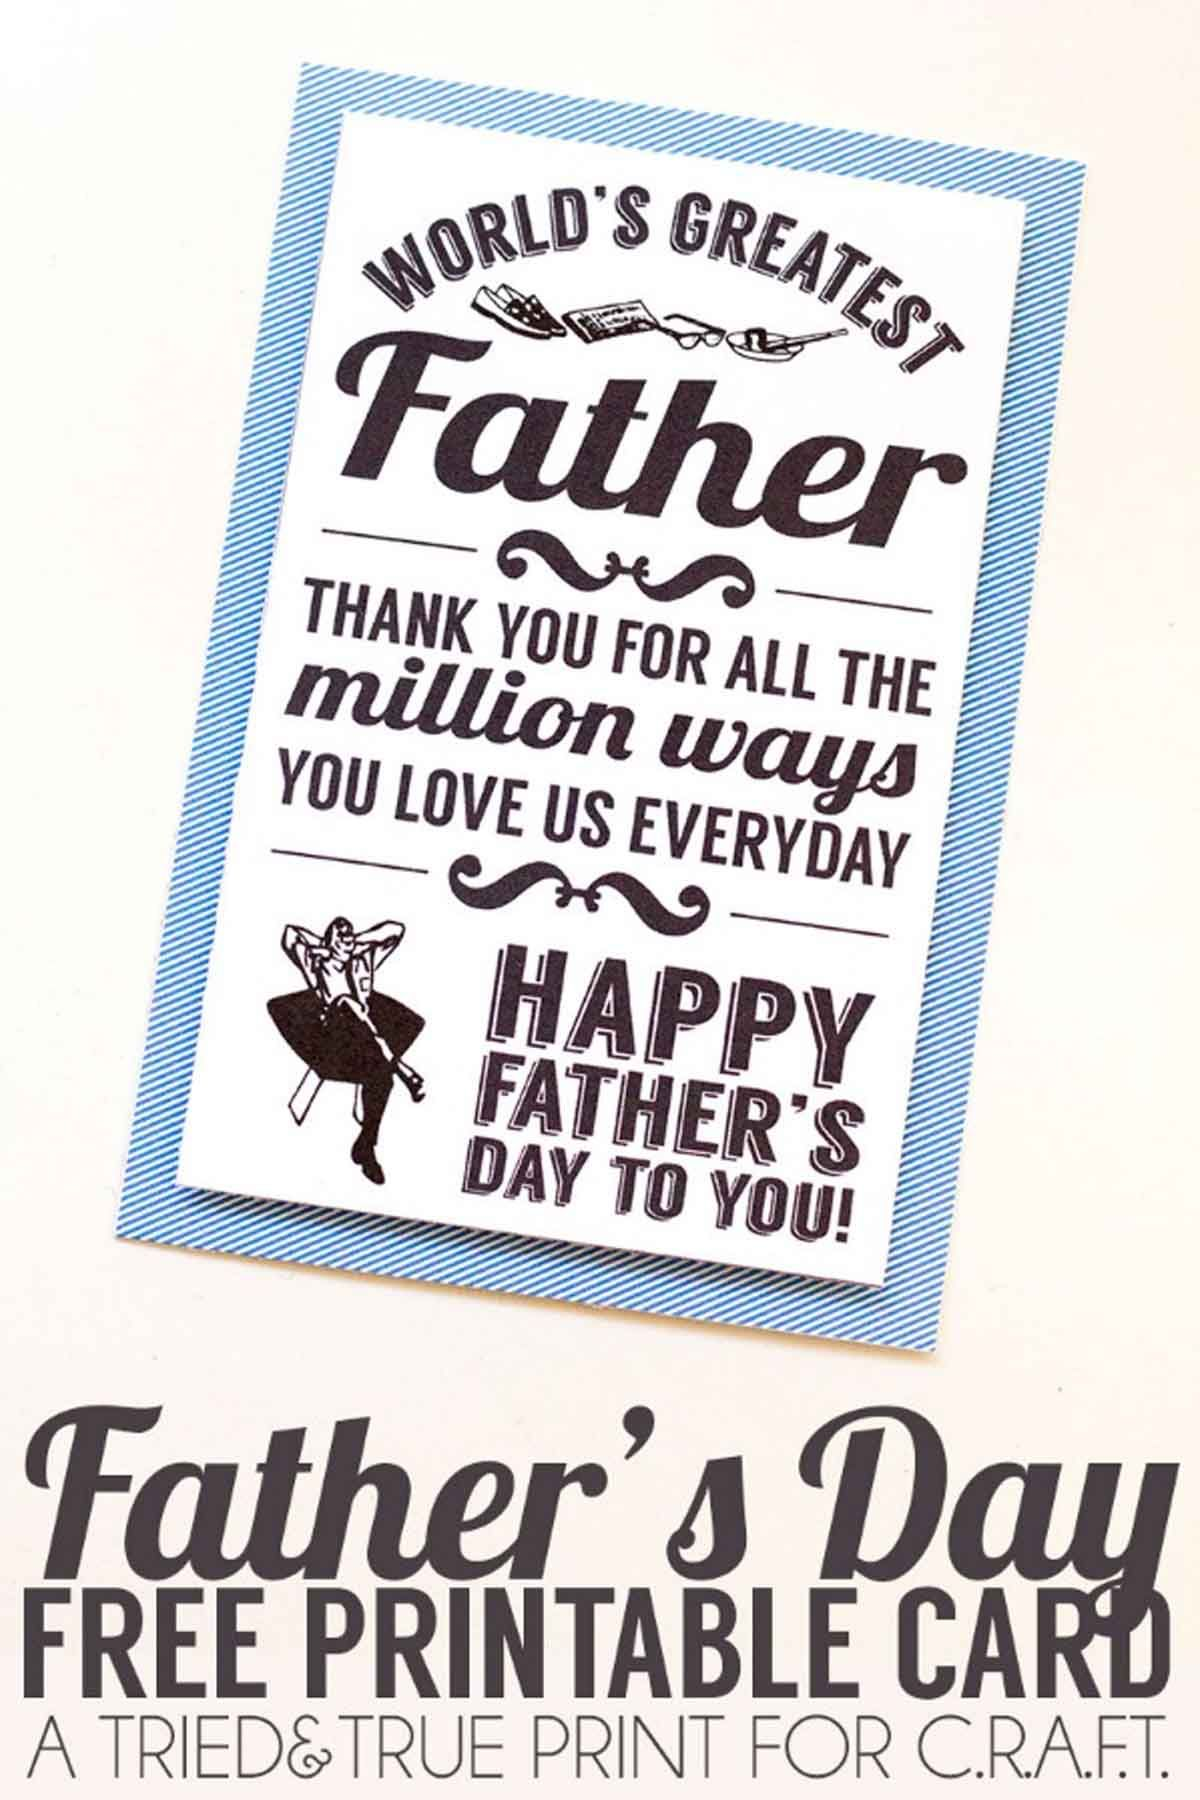 picture regarding Printable Fathers Day Cards Free known as 25 Printable Fathers Working day Playing cards - Free of charge Printable Playing cards For